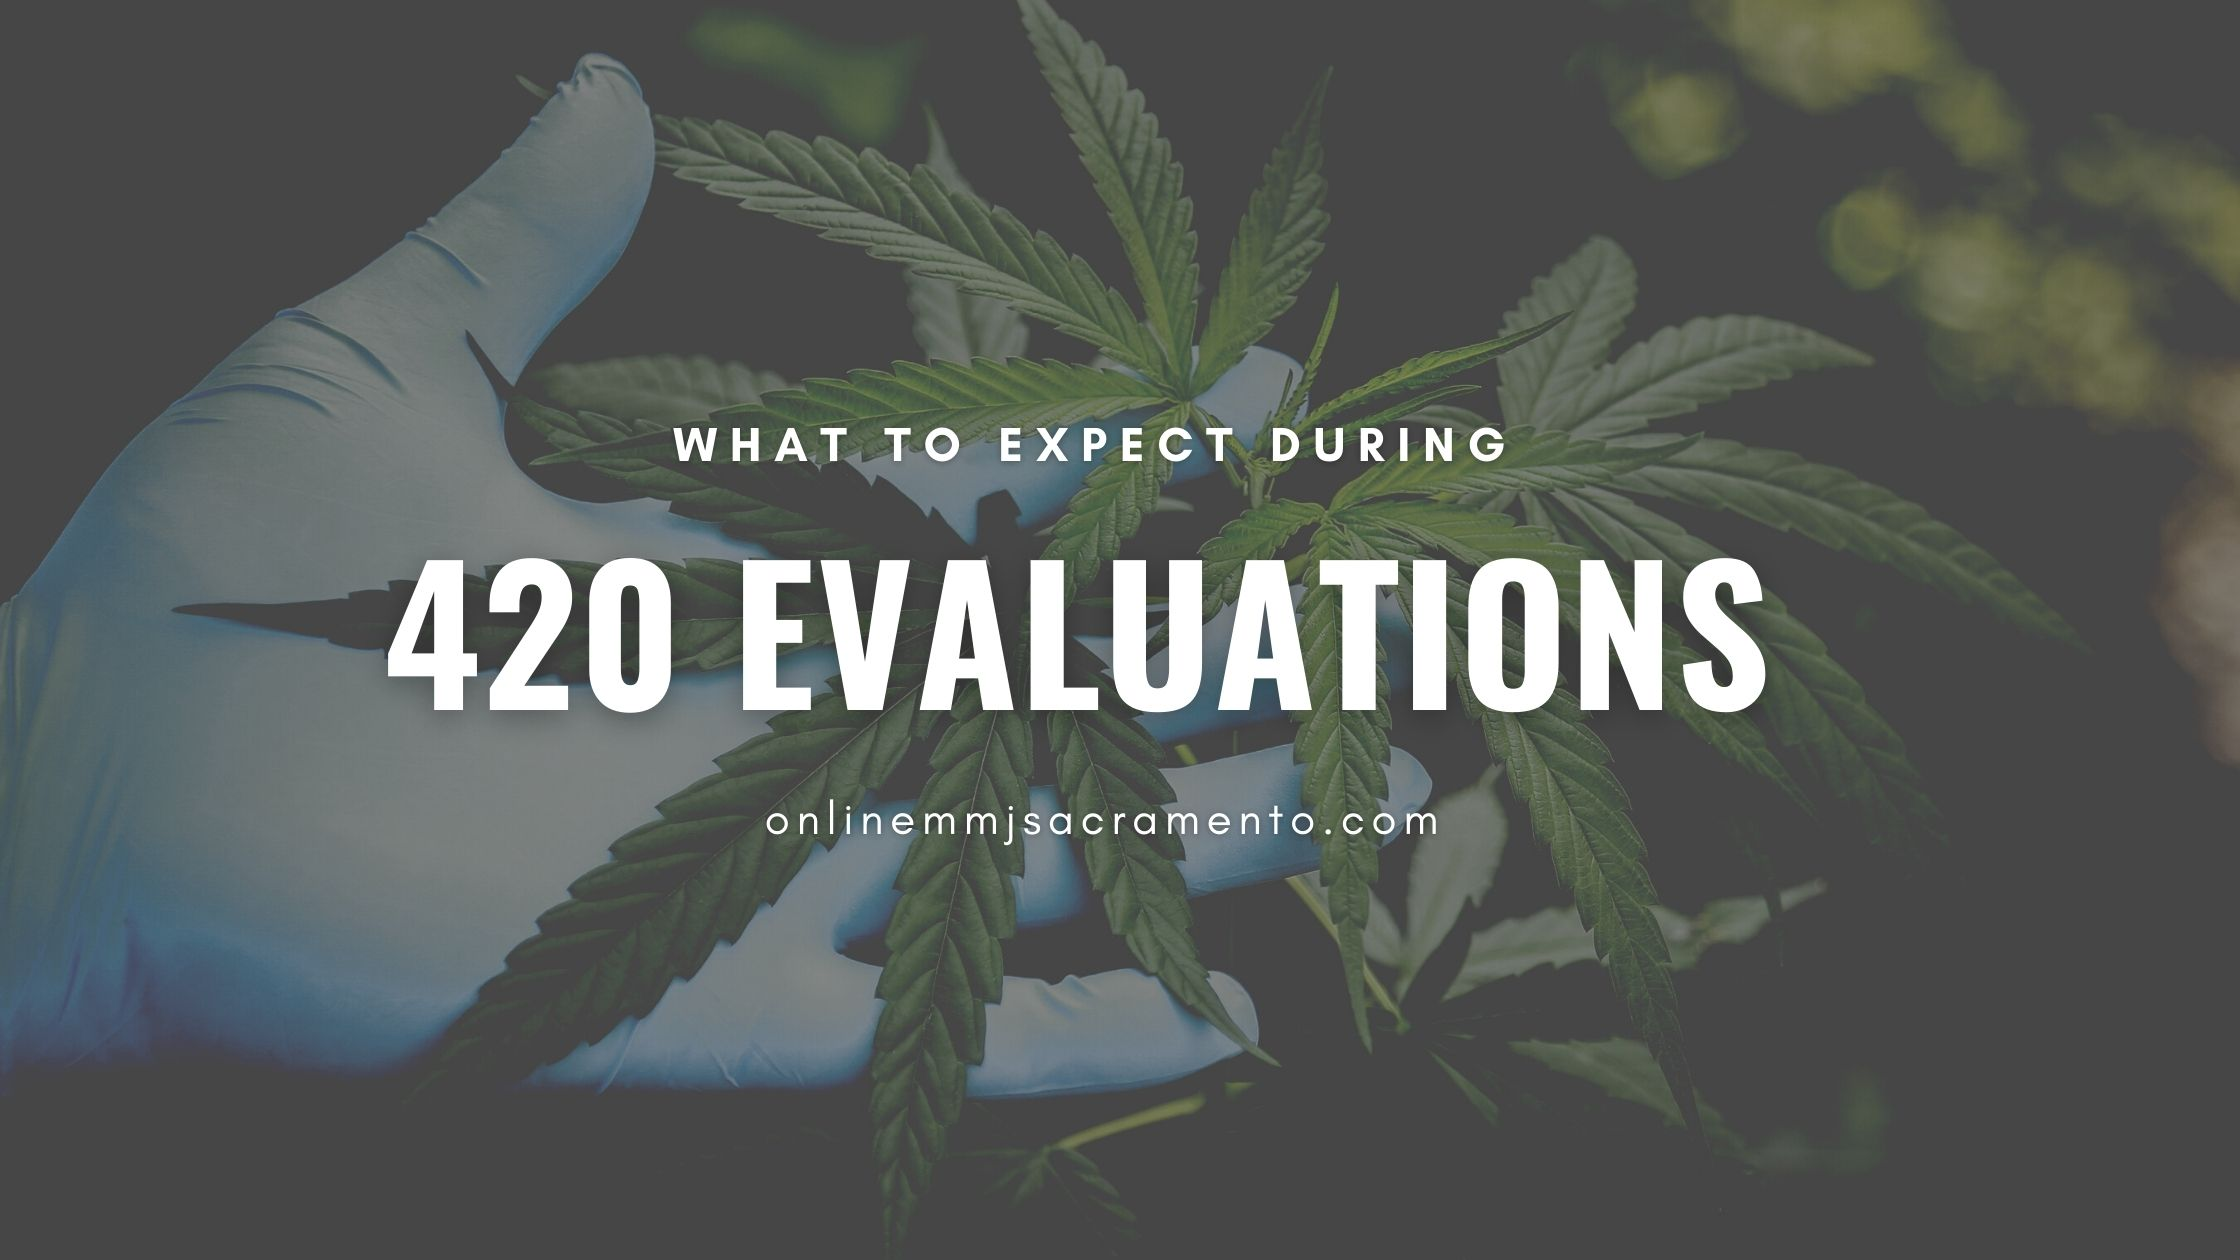 What To Expect During 420 Evaluations